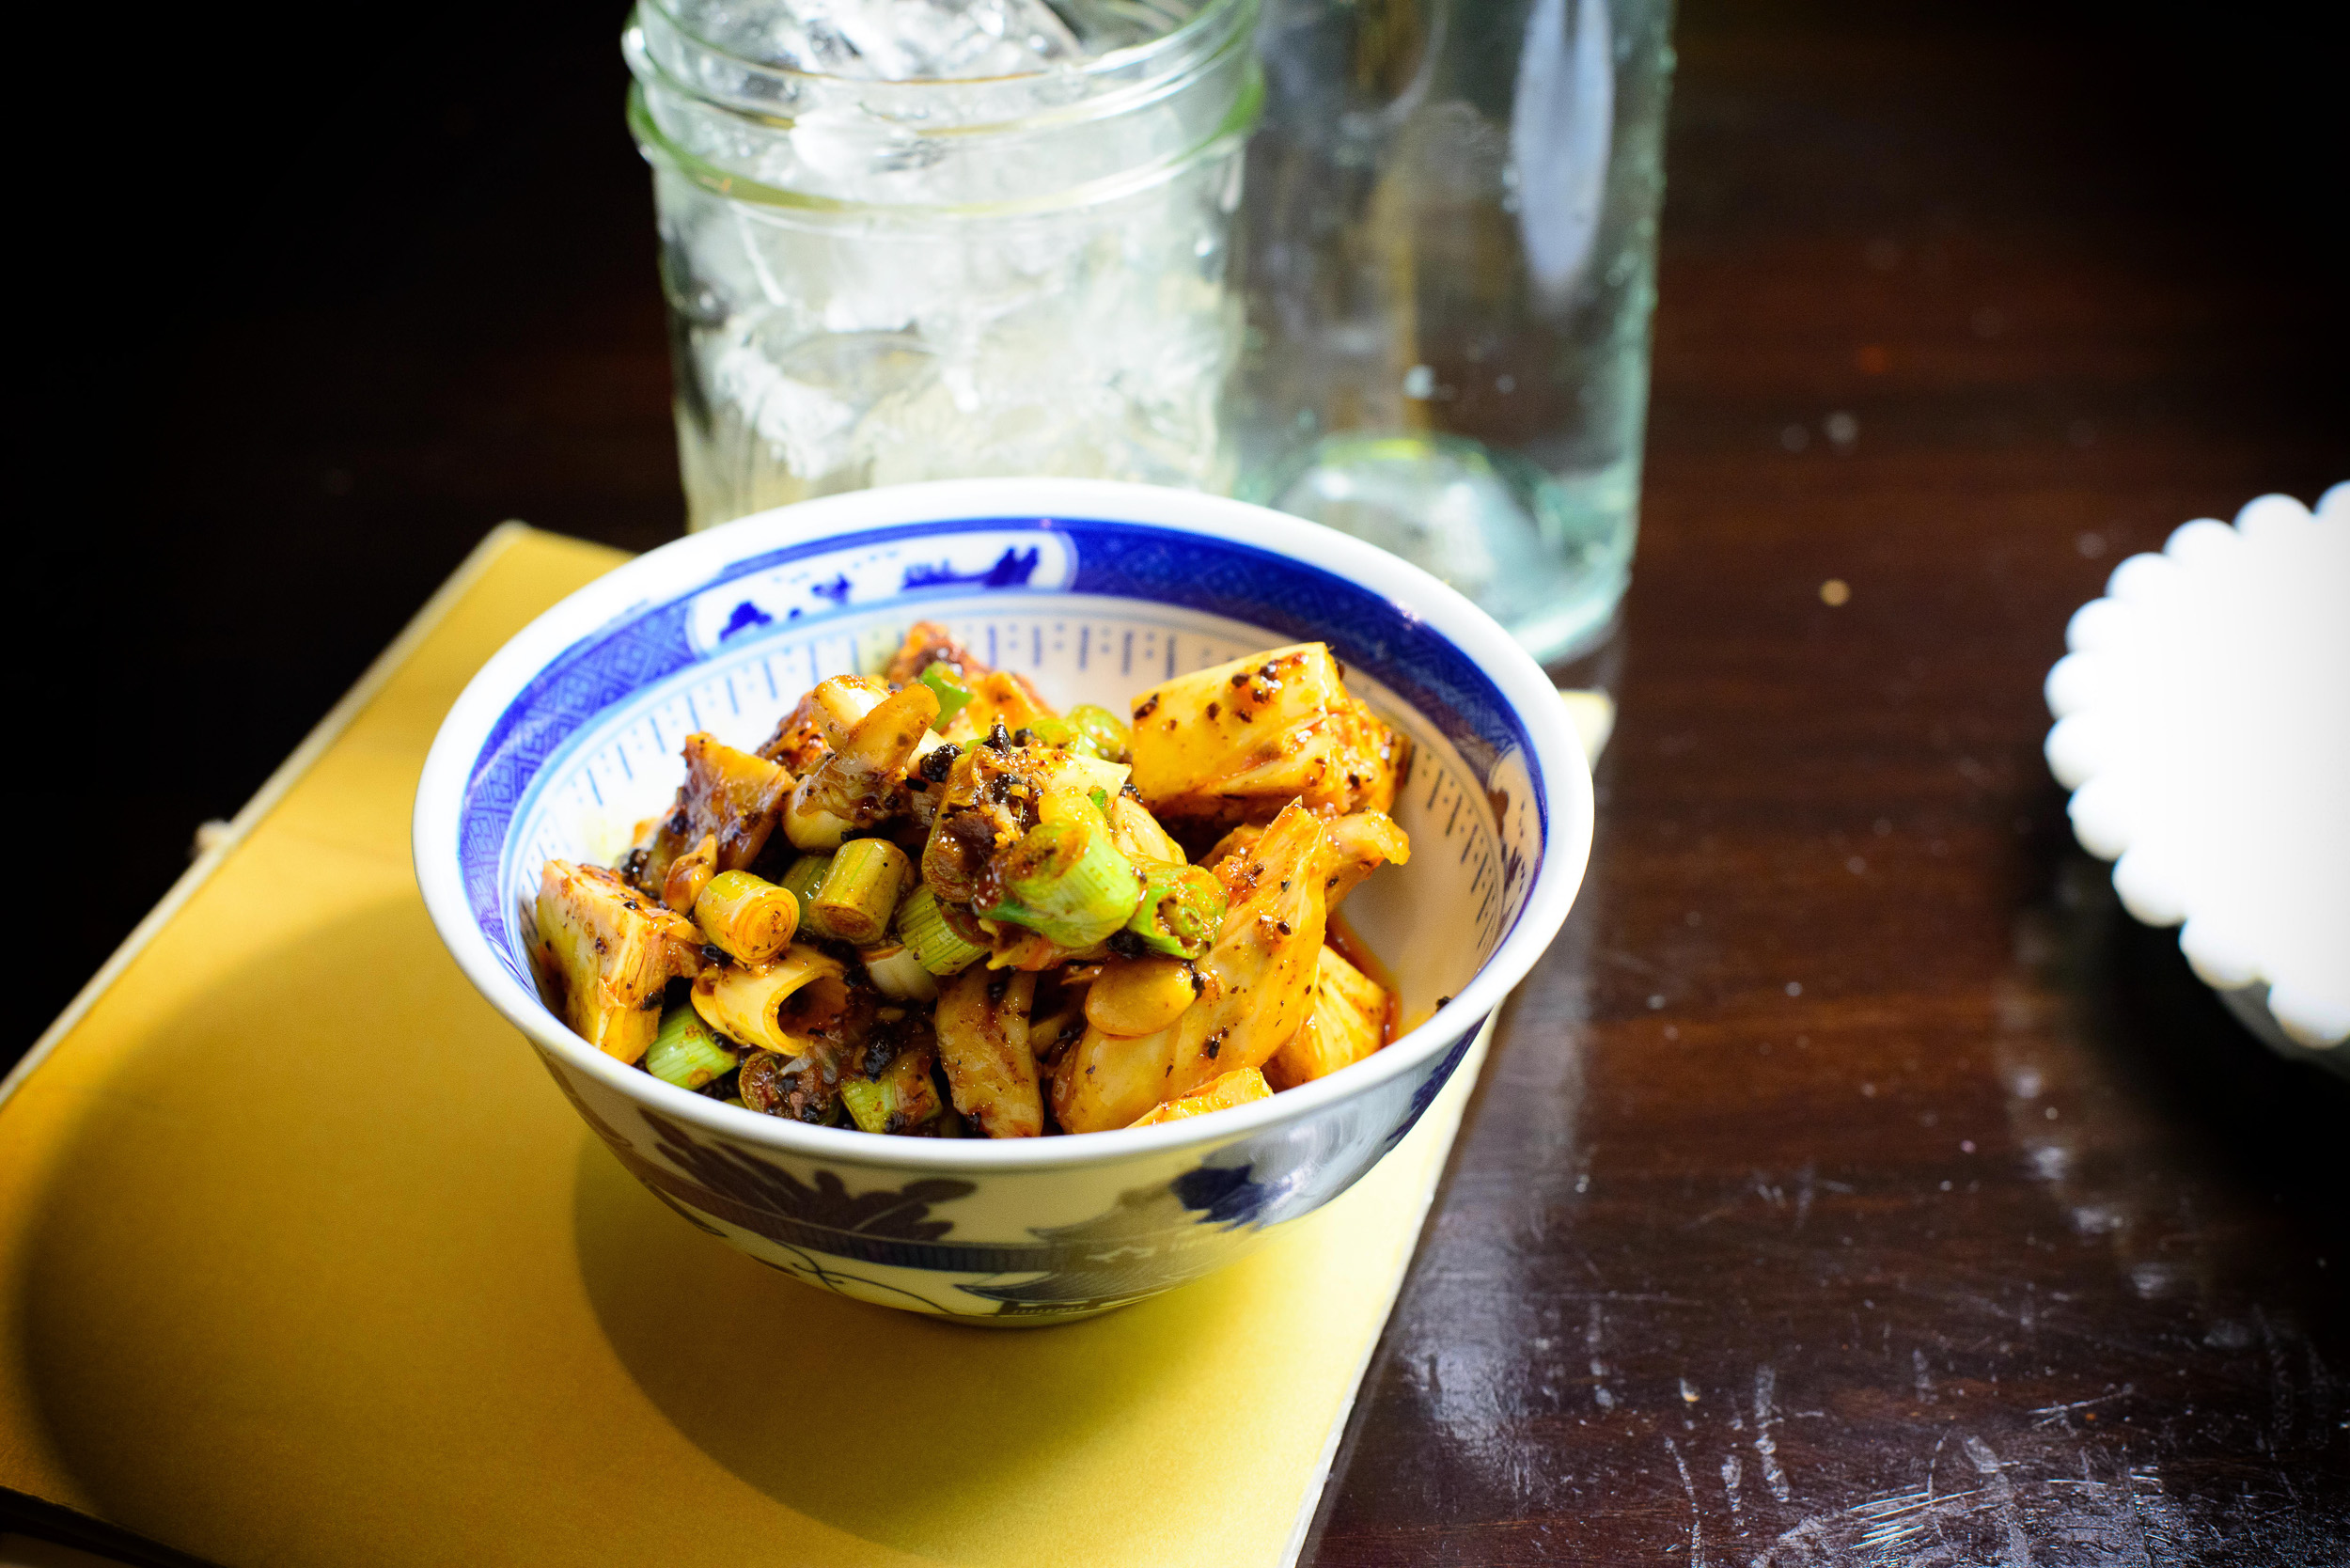 Spicy diced rabbit (bone-in) with Sichuanese peppercorns and chi